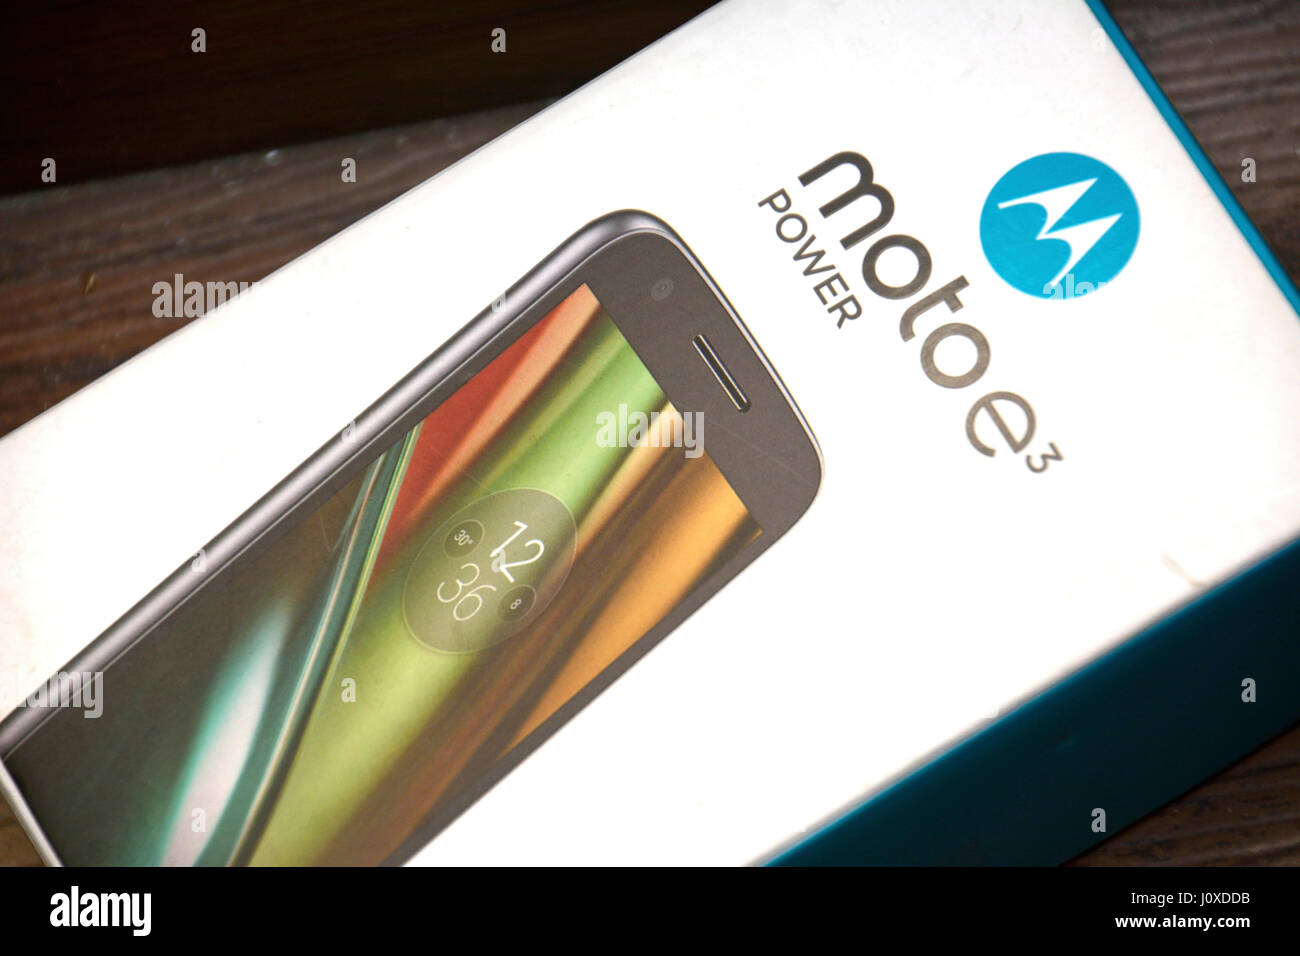 Motorola phone box stock photo 138264263 alamy motorola phone box biocorpaavc Gallery